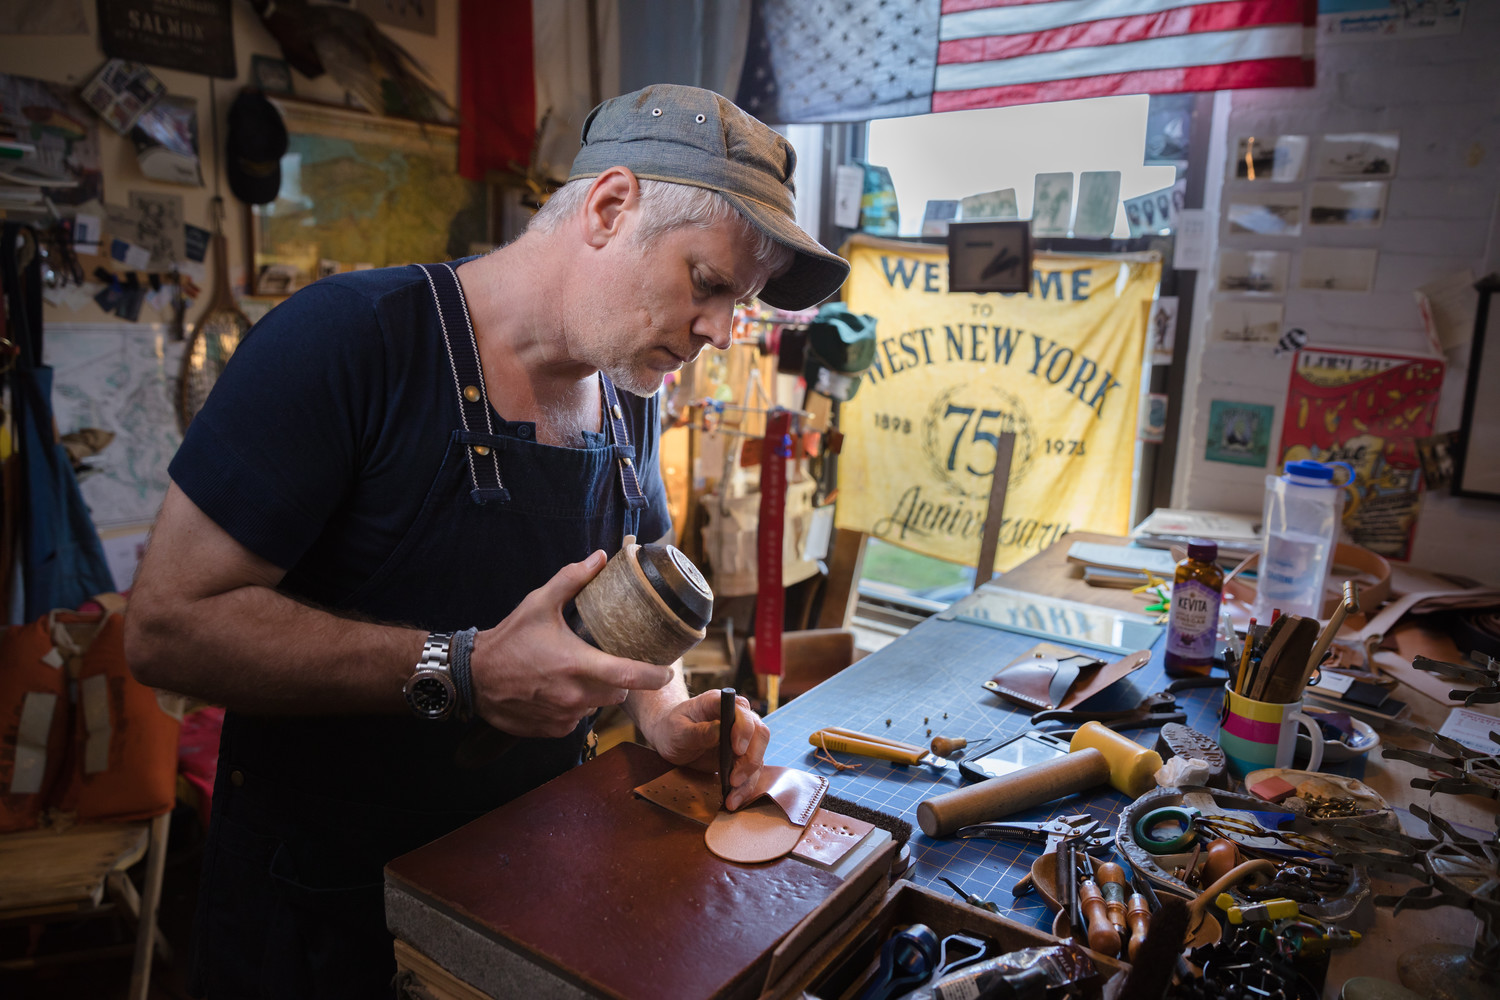 Leather artist Michael Todd Moen of Sweettrade crafting leatherwork for his online store-front in his Warren-based studio.